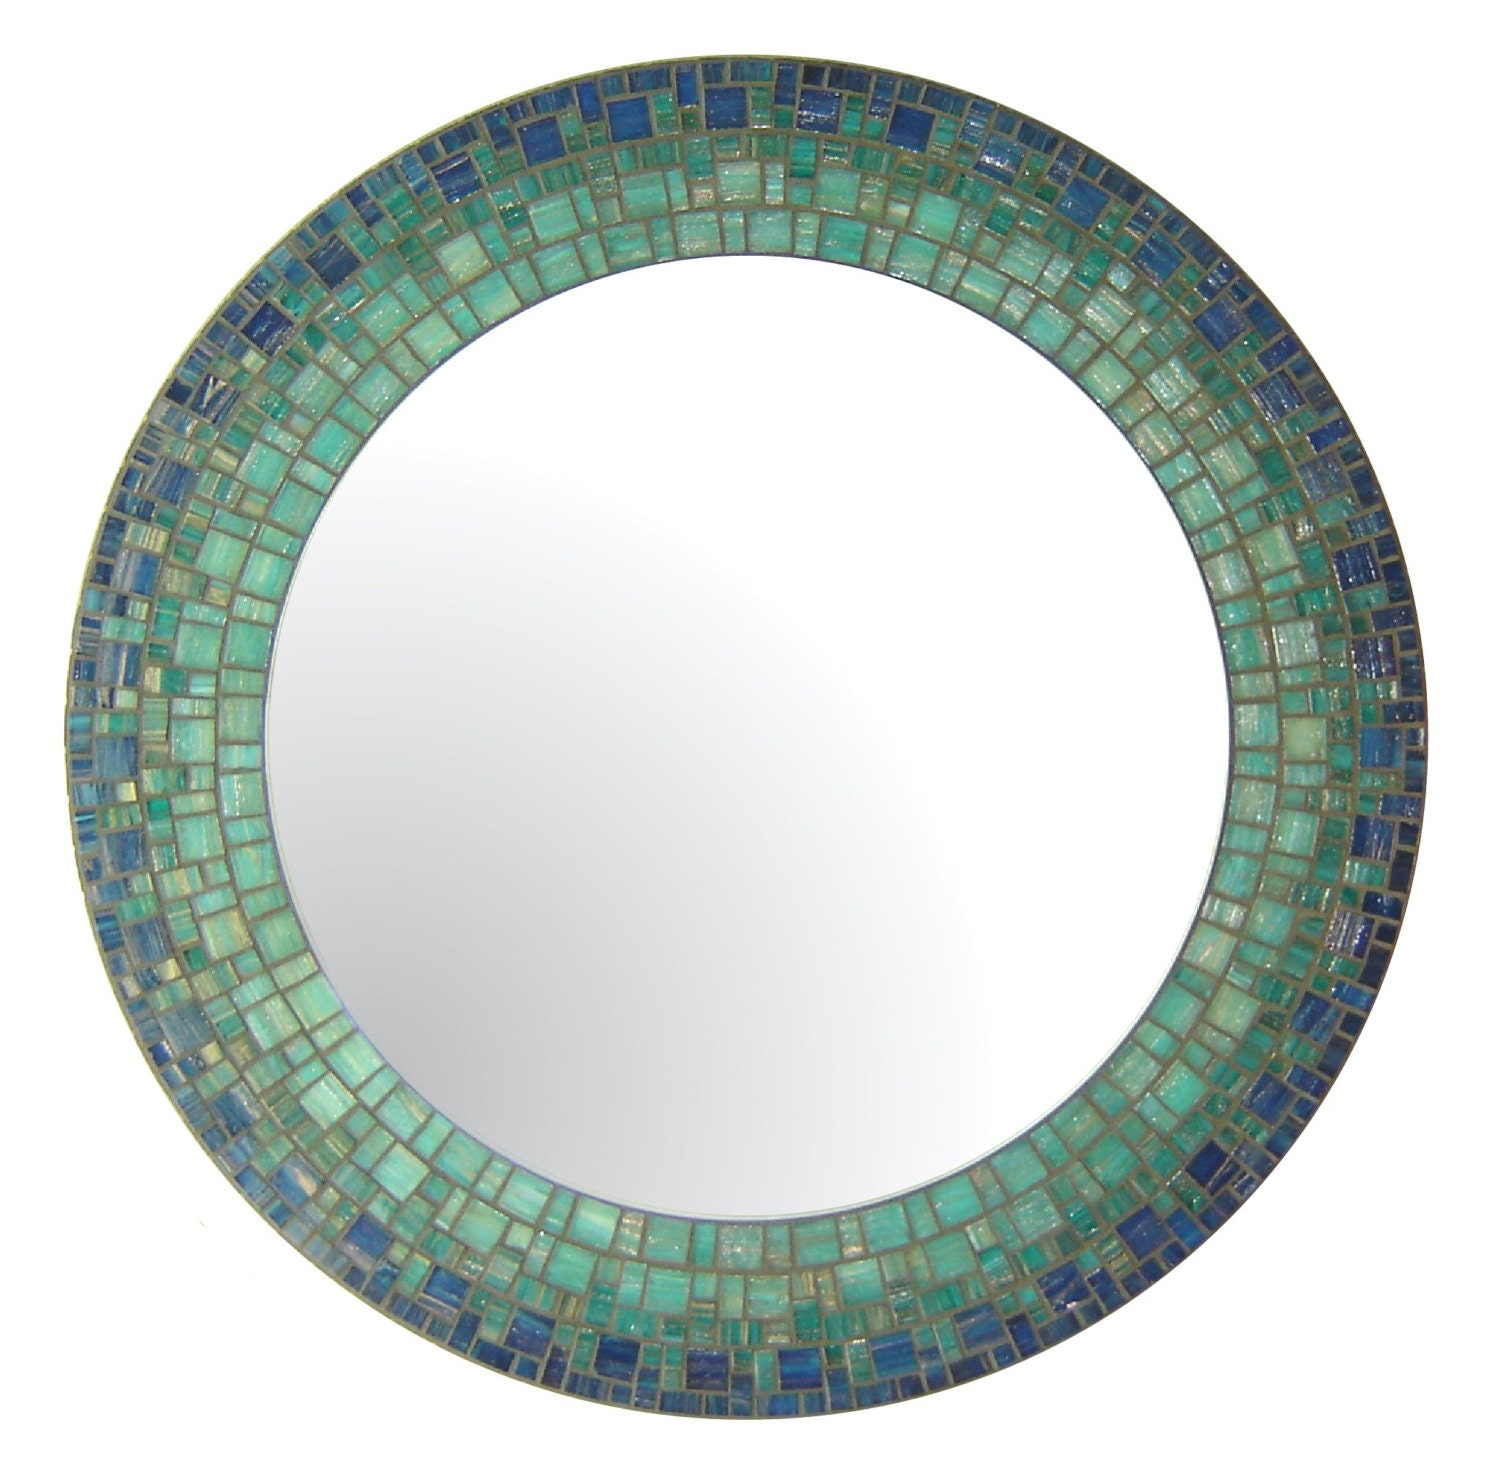 Blue teal round mirror glass mosaic by opusmosaics on etsy for Teal framed mirror